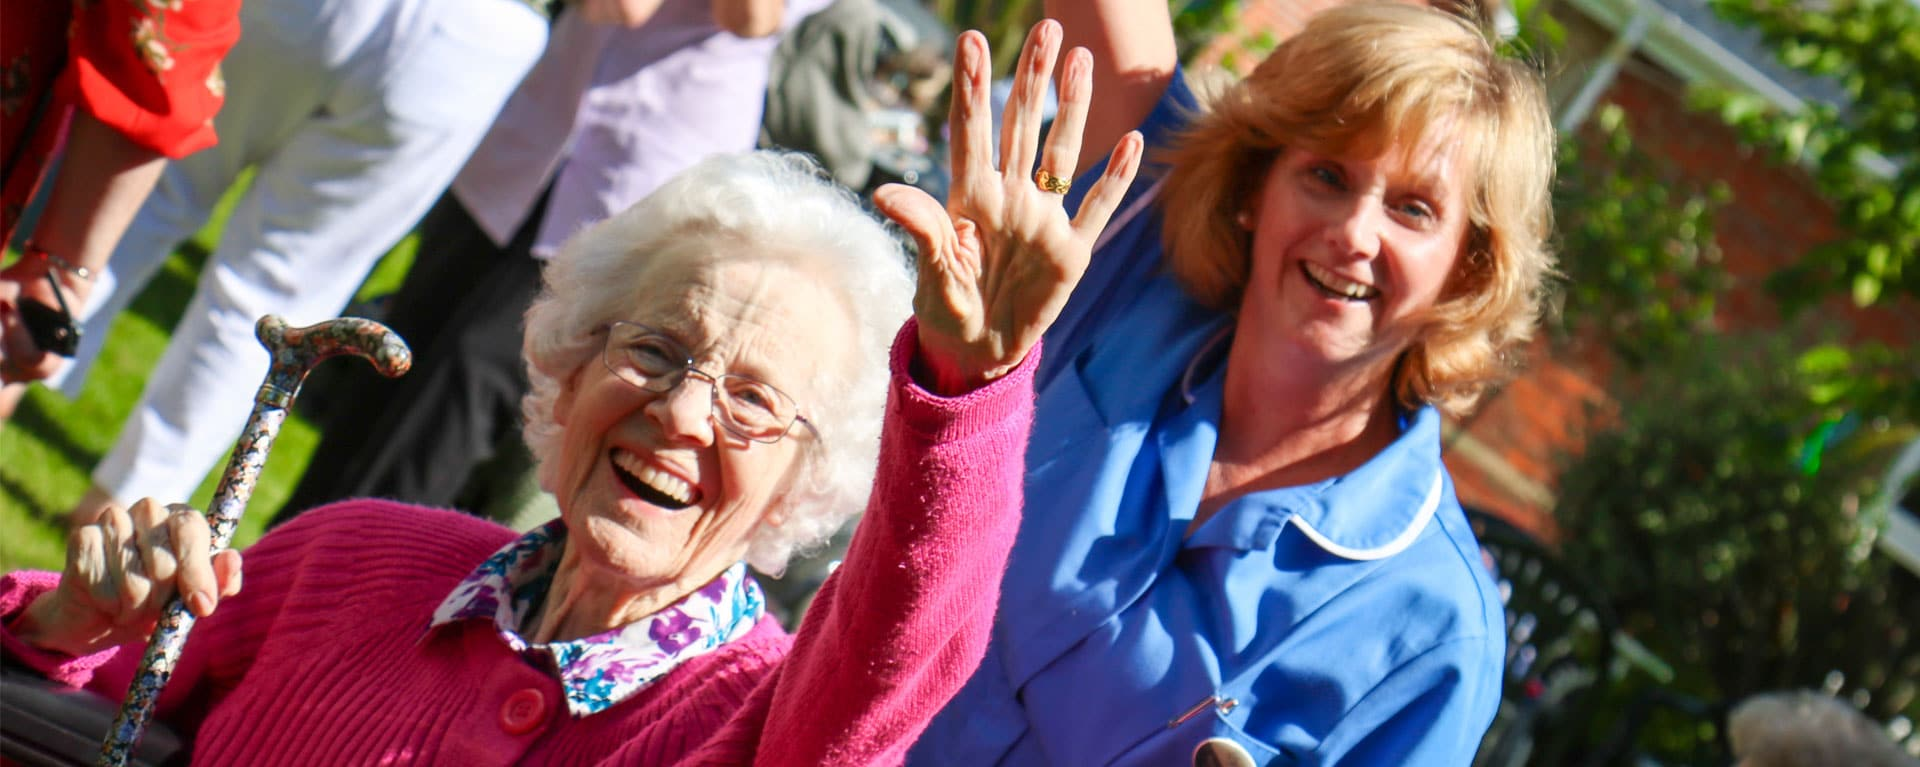 Resident and nurse waving and smiling in the garden